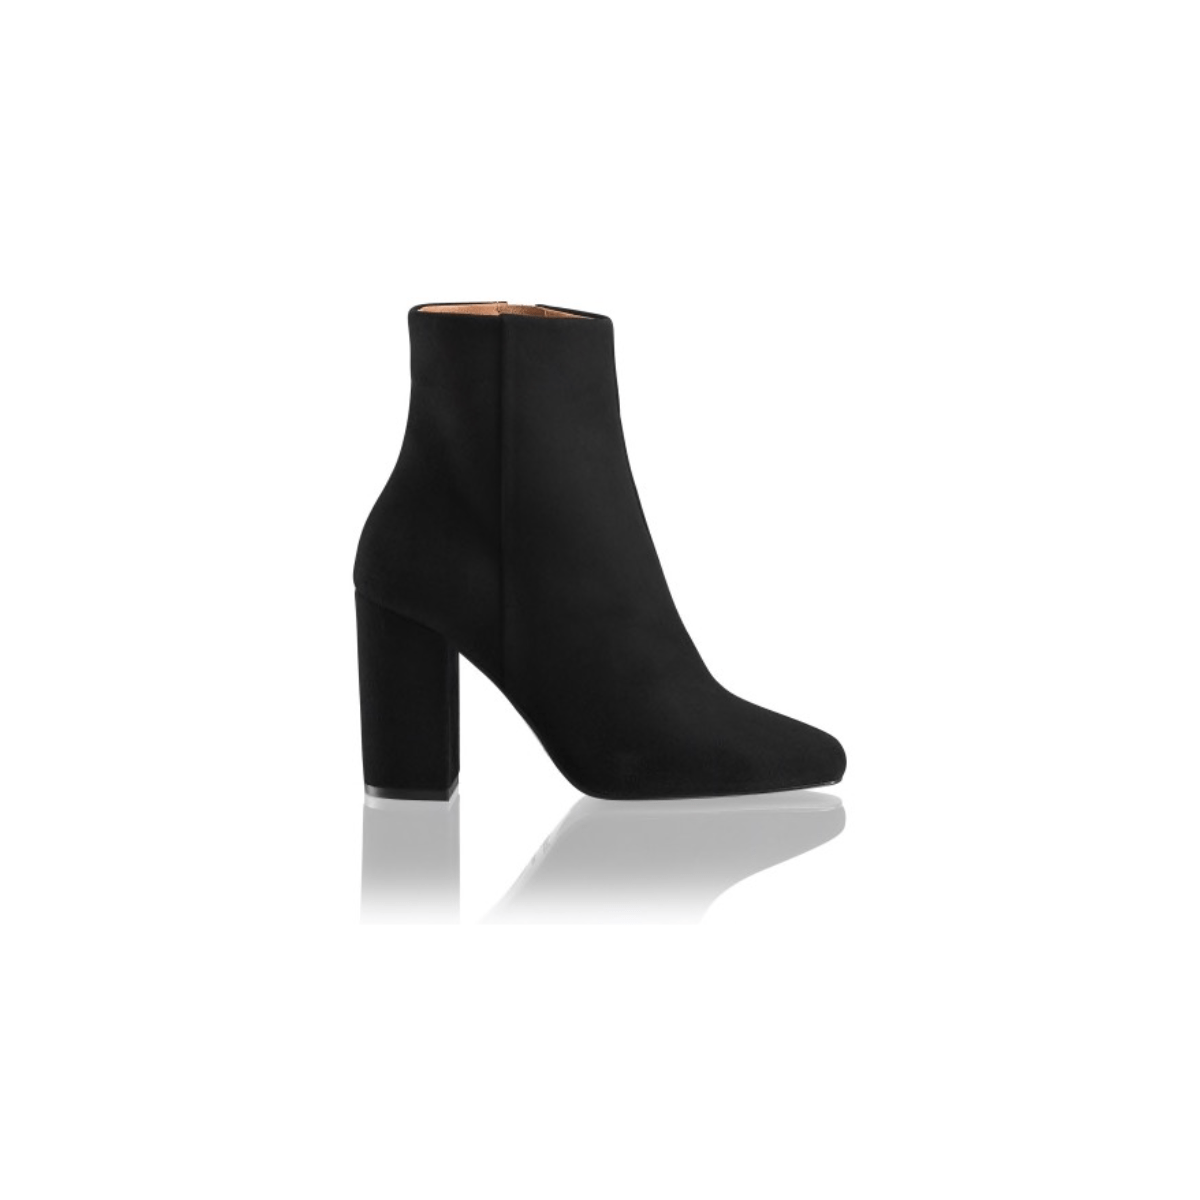 Russell \u0026 Bromley 'Date Night' Ankle